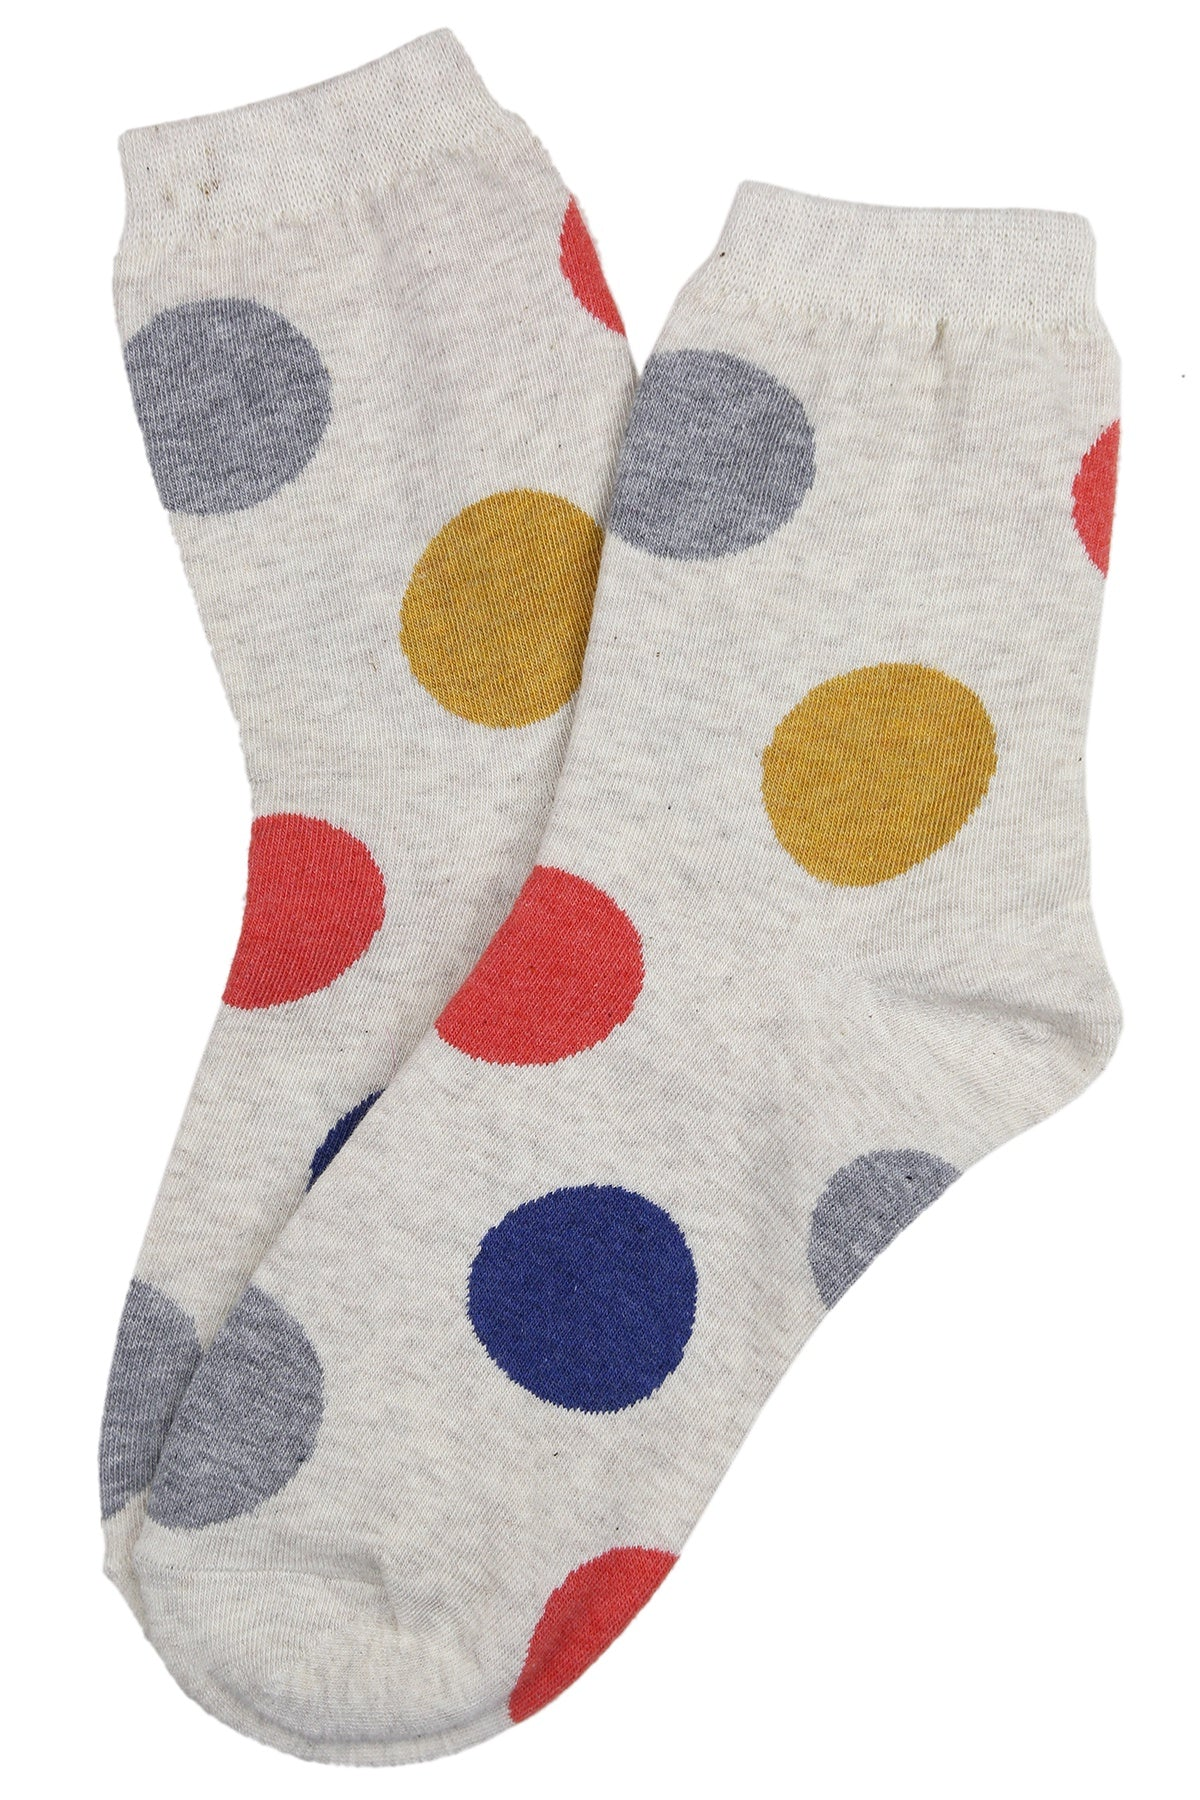 Super Spot Cotton Socks Cream